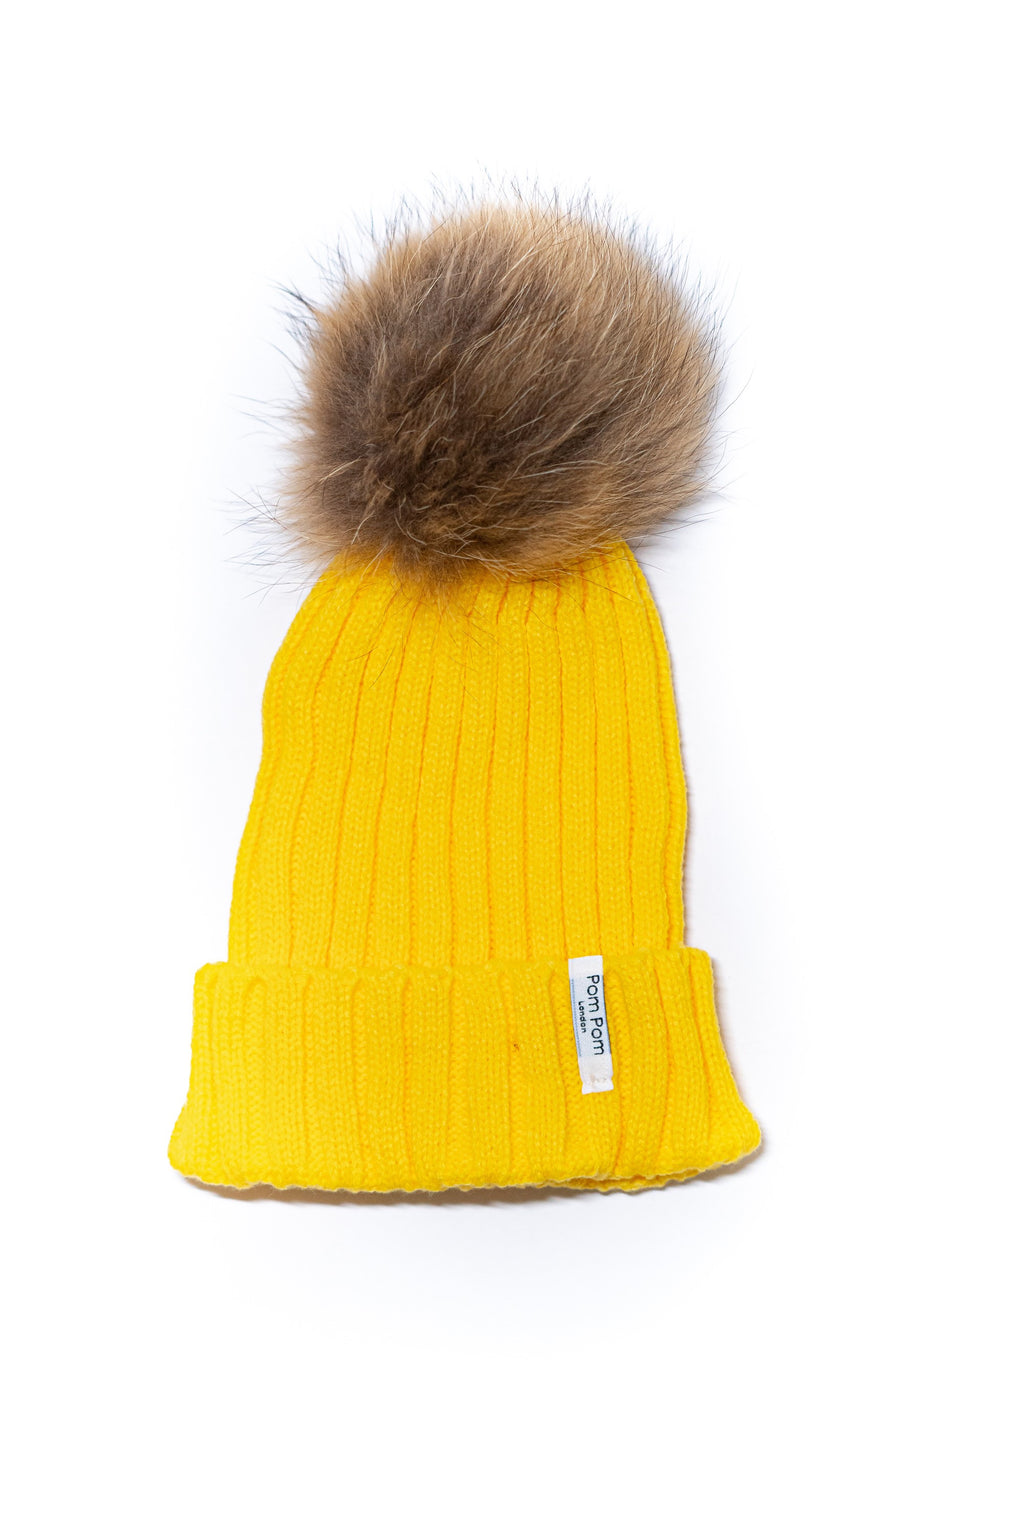 Original Yellow - Pom Pom London